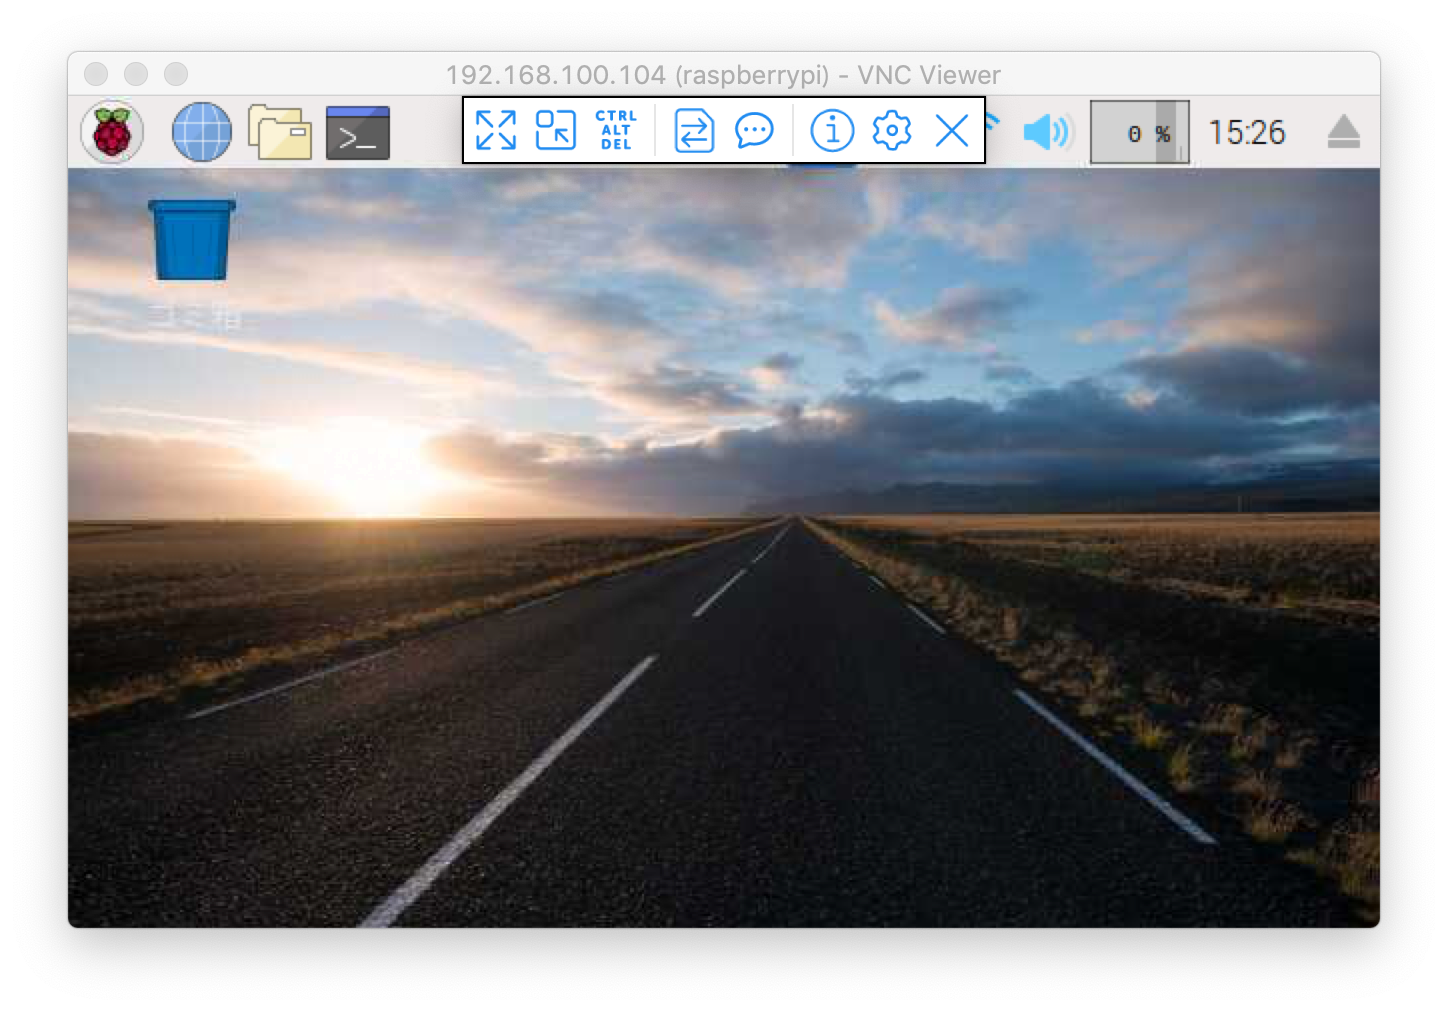 vnc_viewer5.png